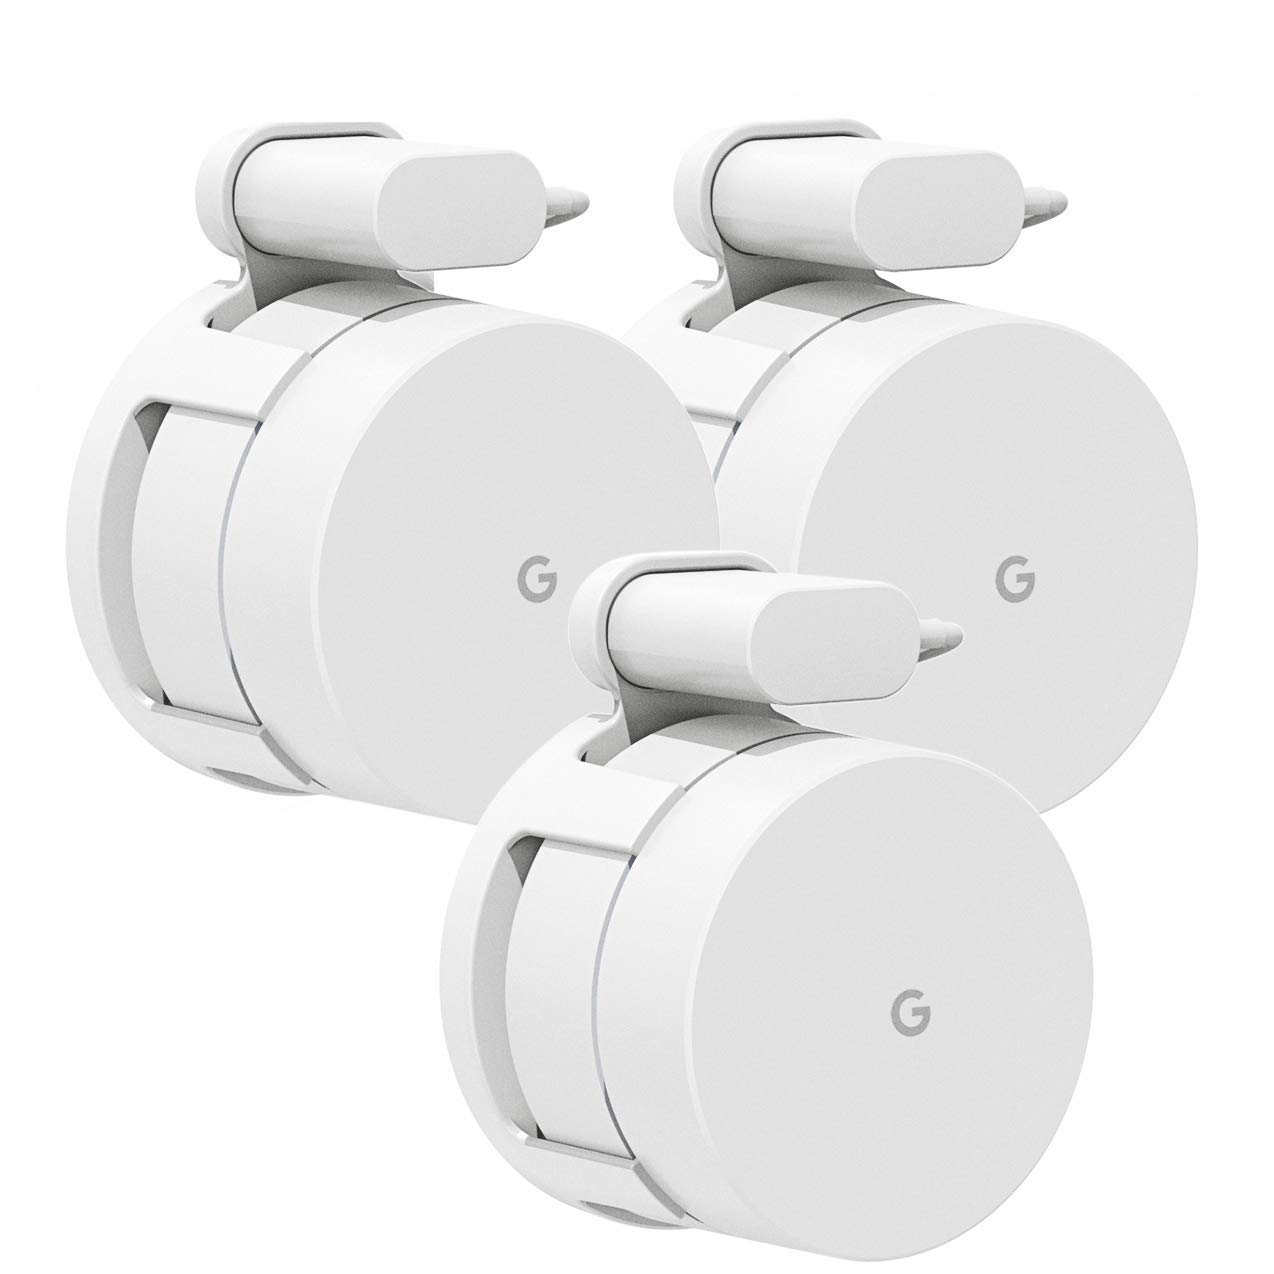 Google WiFi Wall Mount, Mrount Space-saving Outlet Mount Holder Hanger for Google WiFI Router and Google Mesh with Cord Management, No Screws Needed (3 Pack)) by Mrount